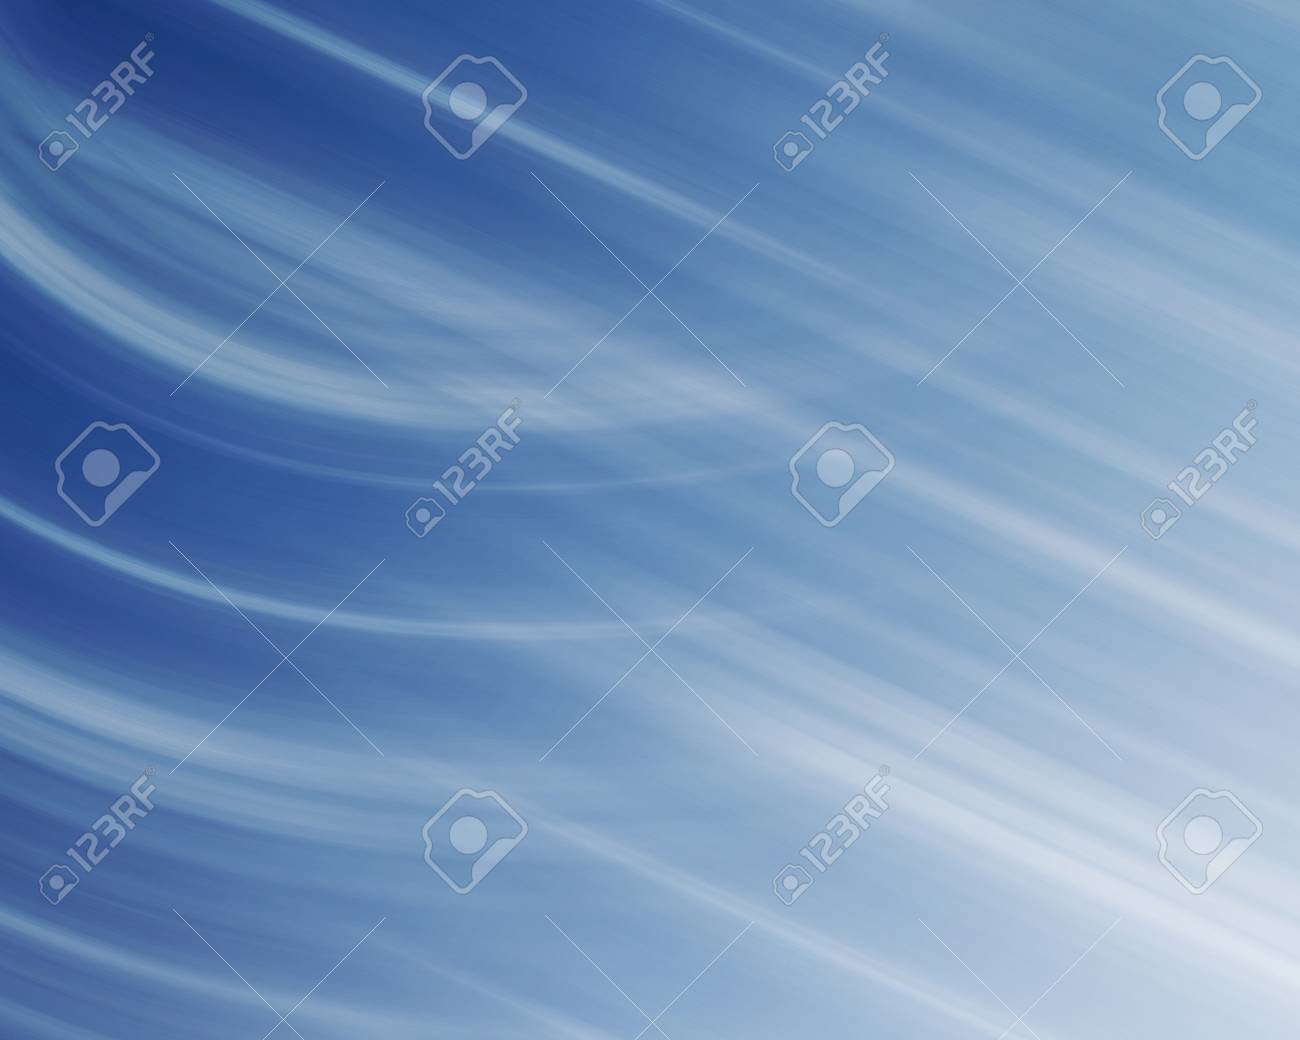 Blue and white linear background with straight and curved lines Stock Photo - 13322961